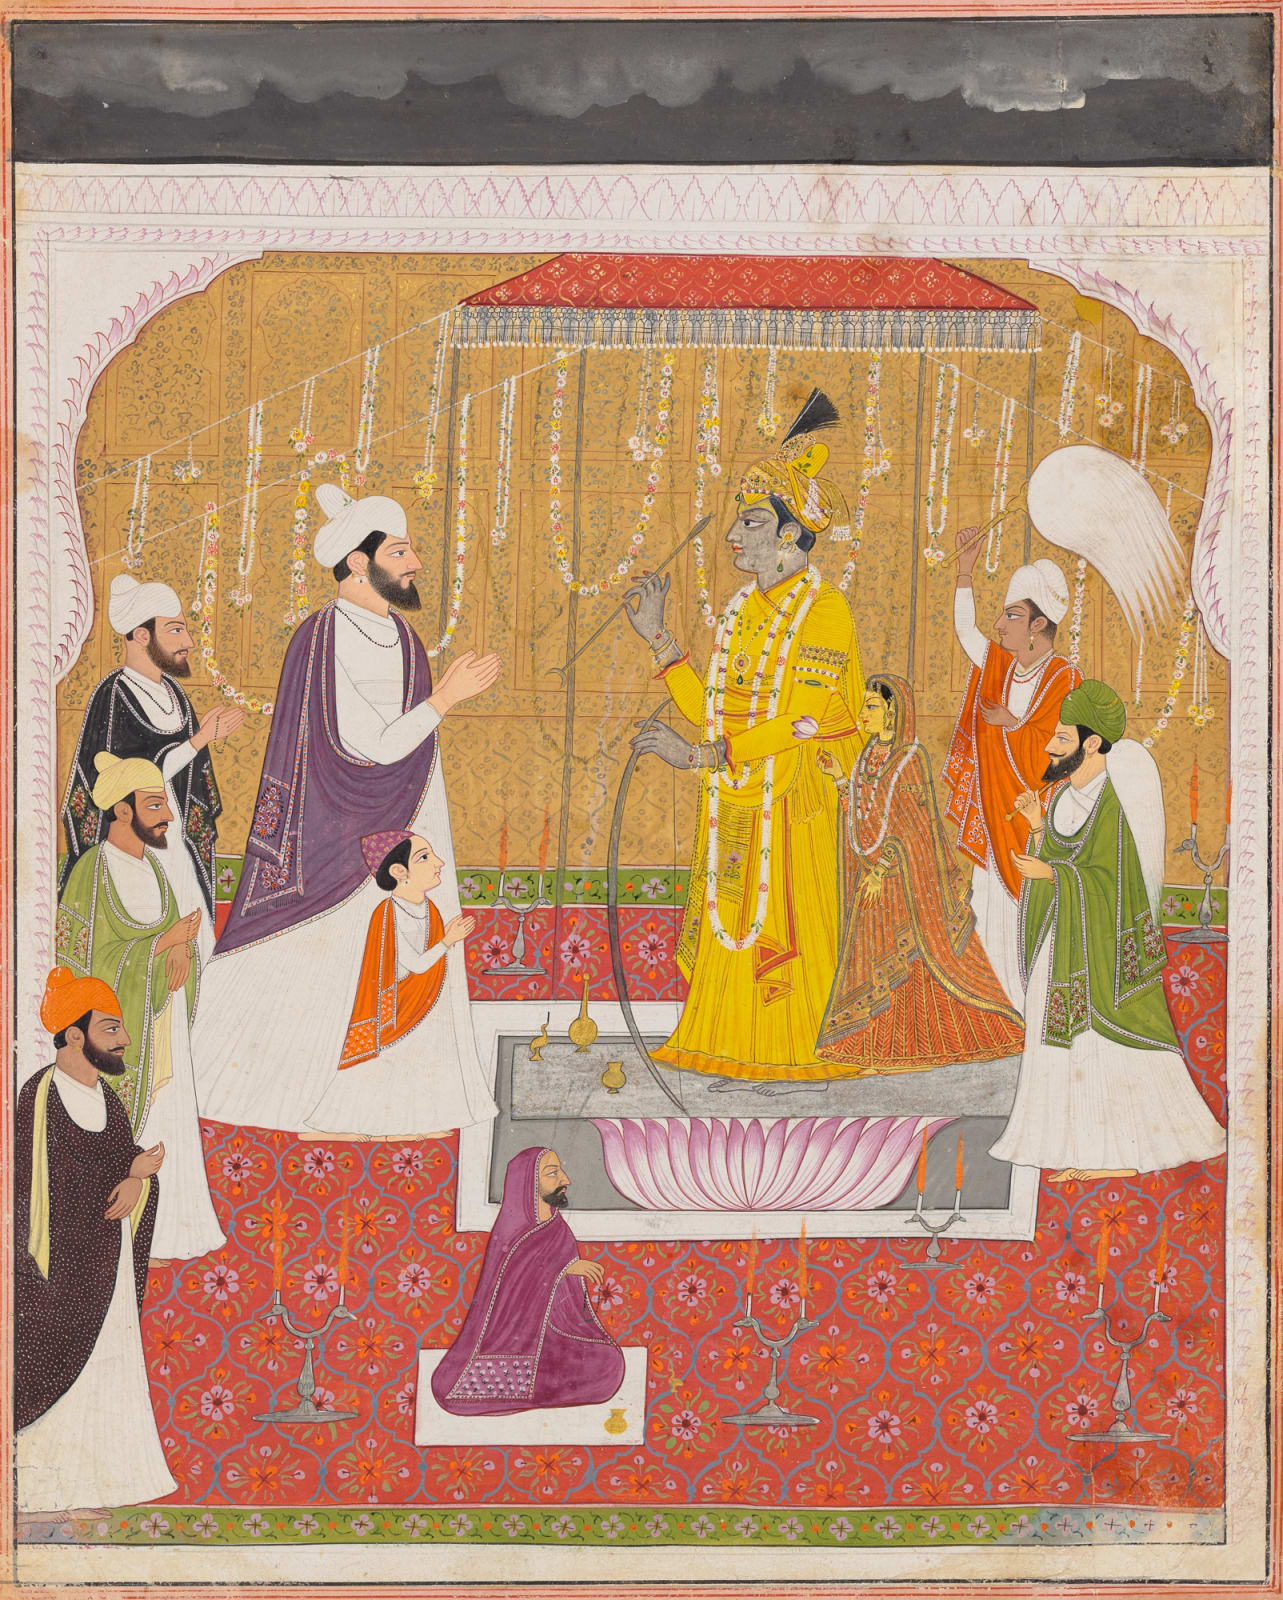 Raja Sansar Chand and his son Anirudh Chand worshipping images of Shiva and Parvati, Style of Purkhu, Kangra, 1792–95